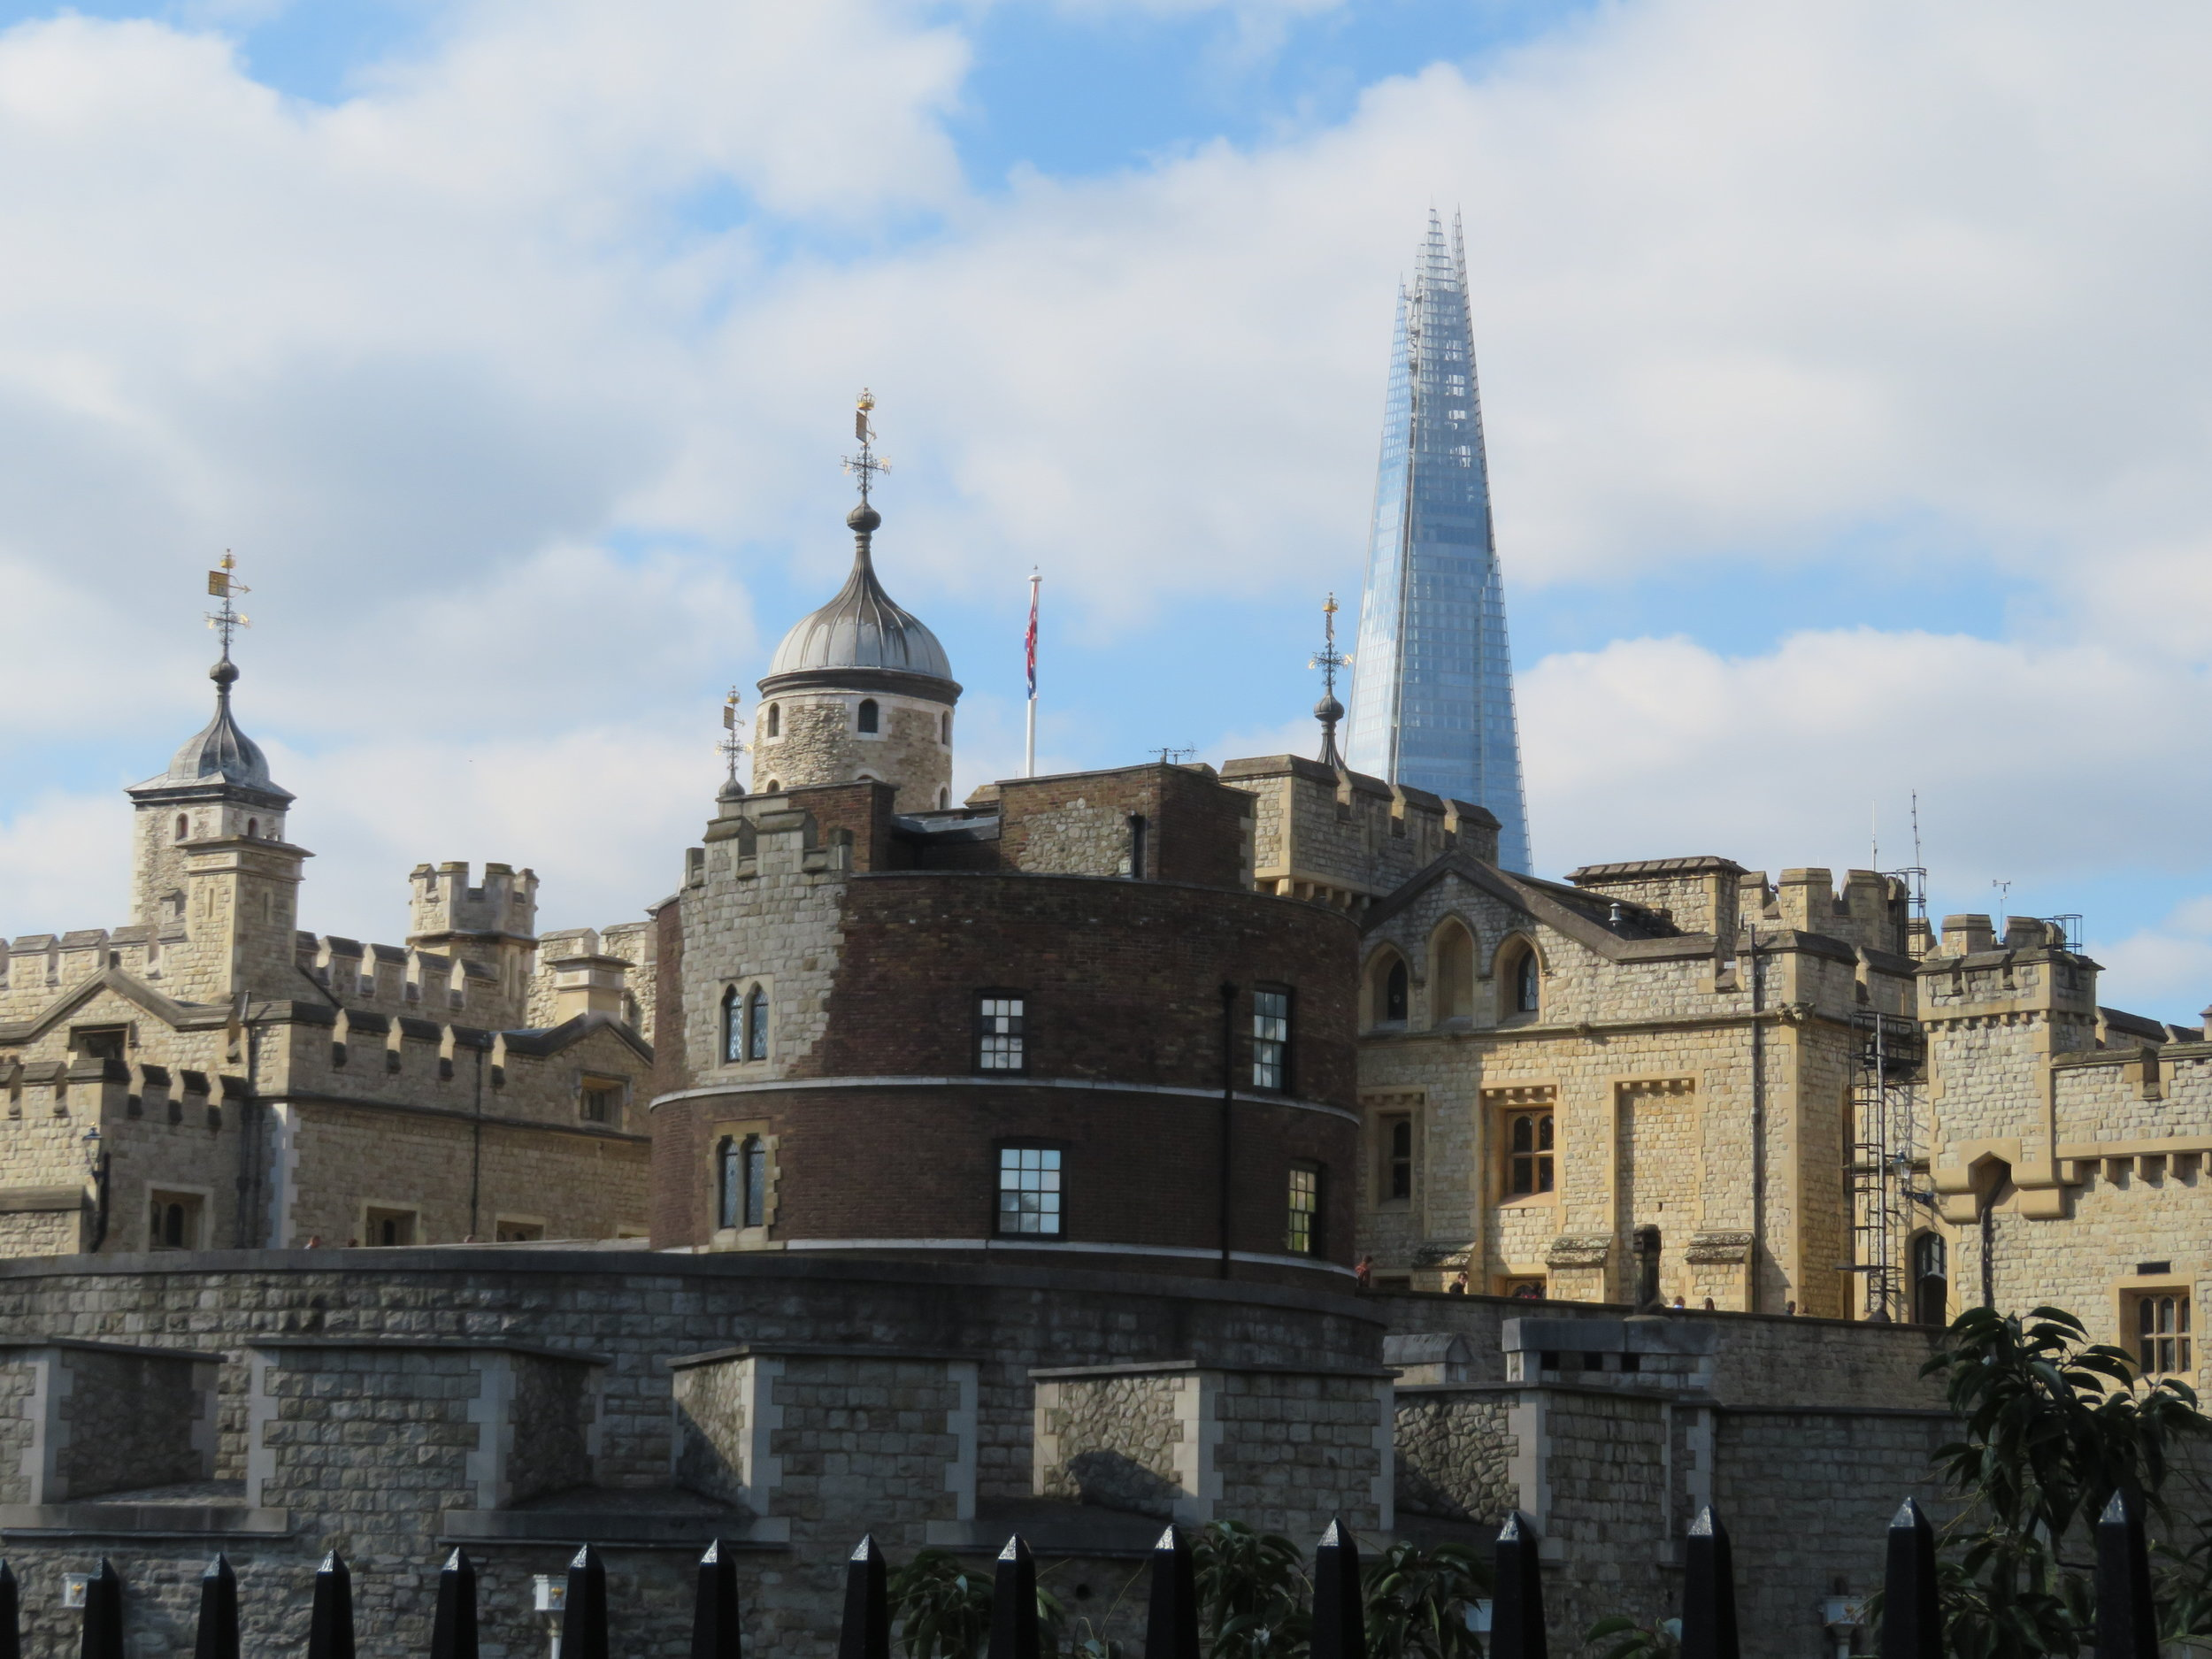 Tower of London with the pinnacle of The Shard in the background